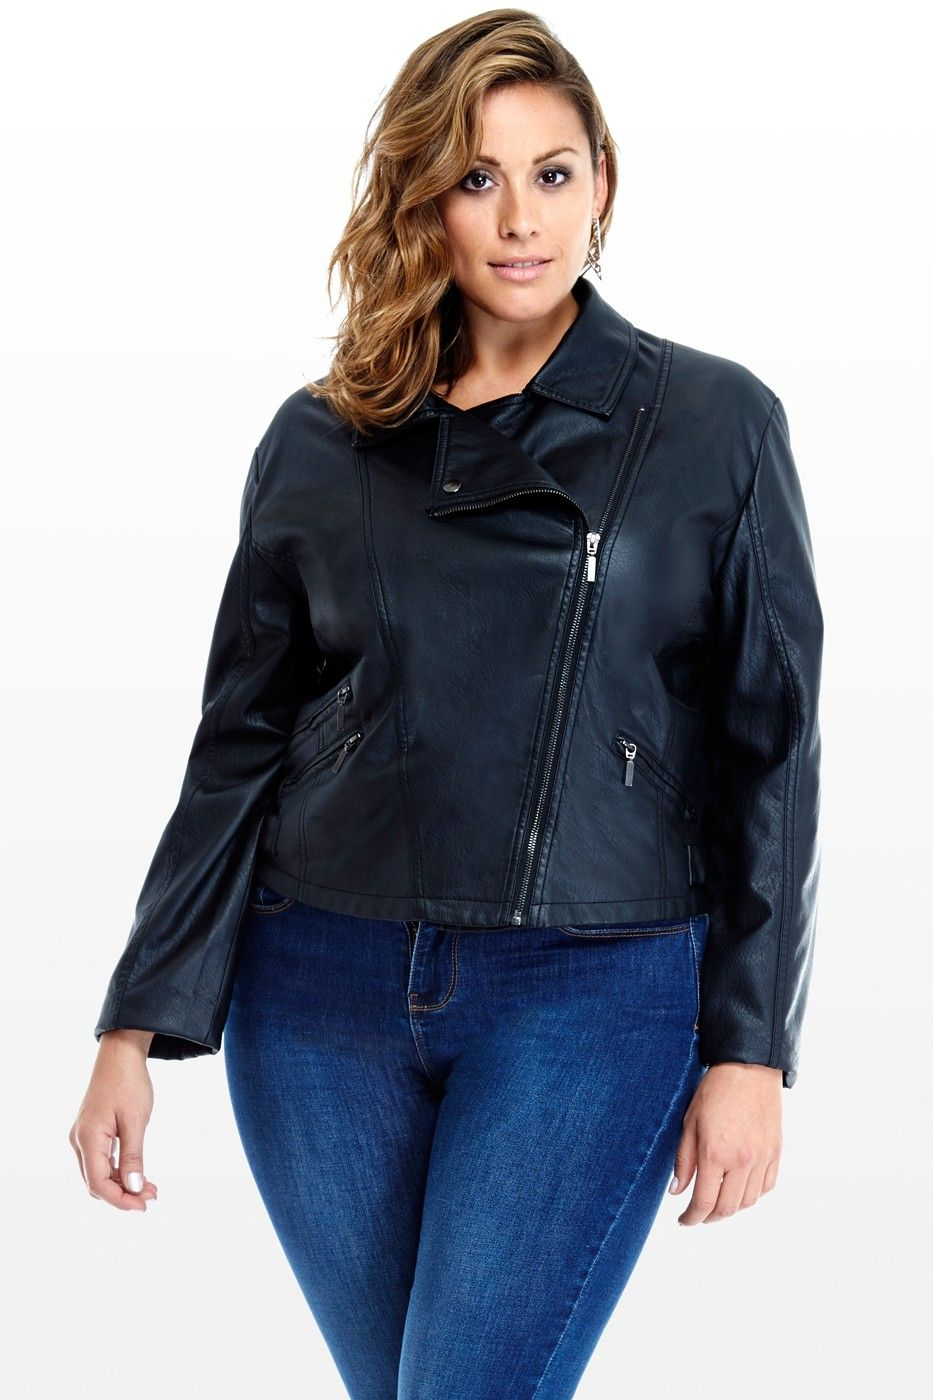 Smooth Ride FauxLeather Motorcycle Jacket (With images